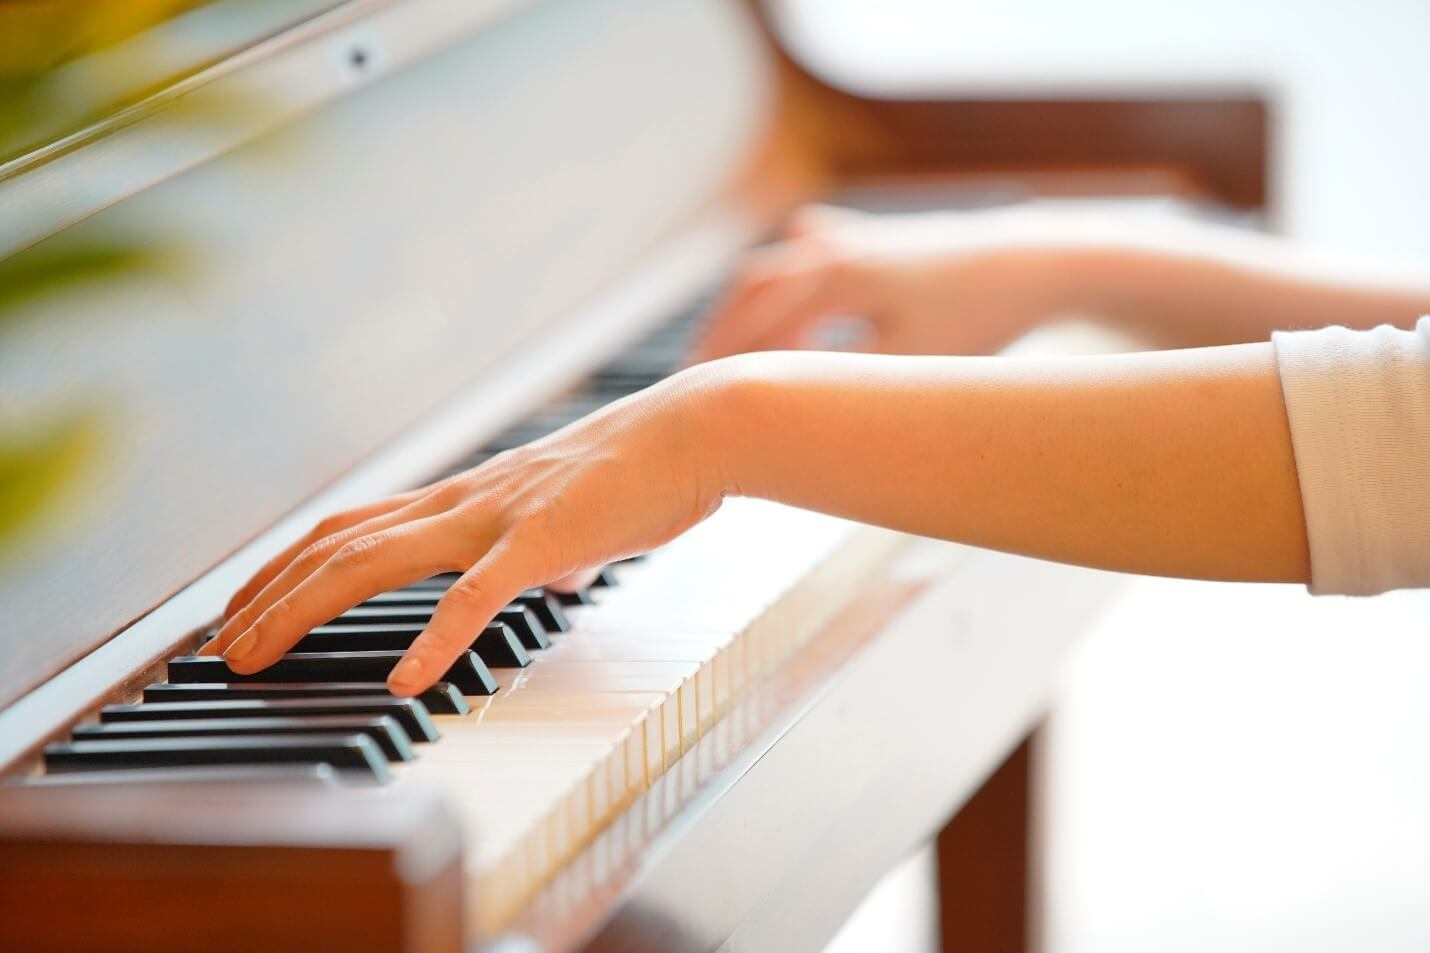 7 Best Brain Hacks for Learning to Play Piano Quickly